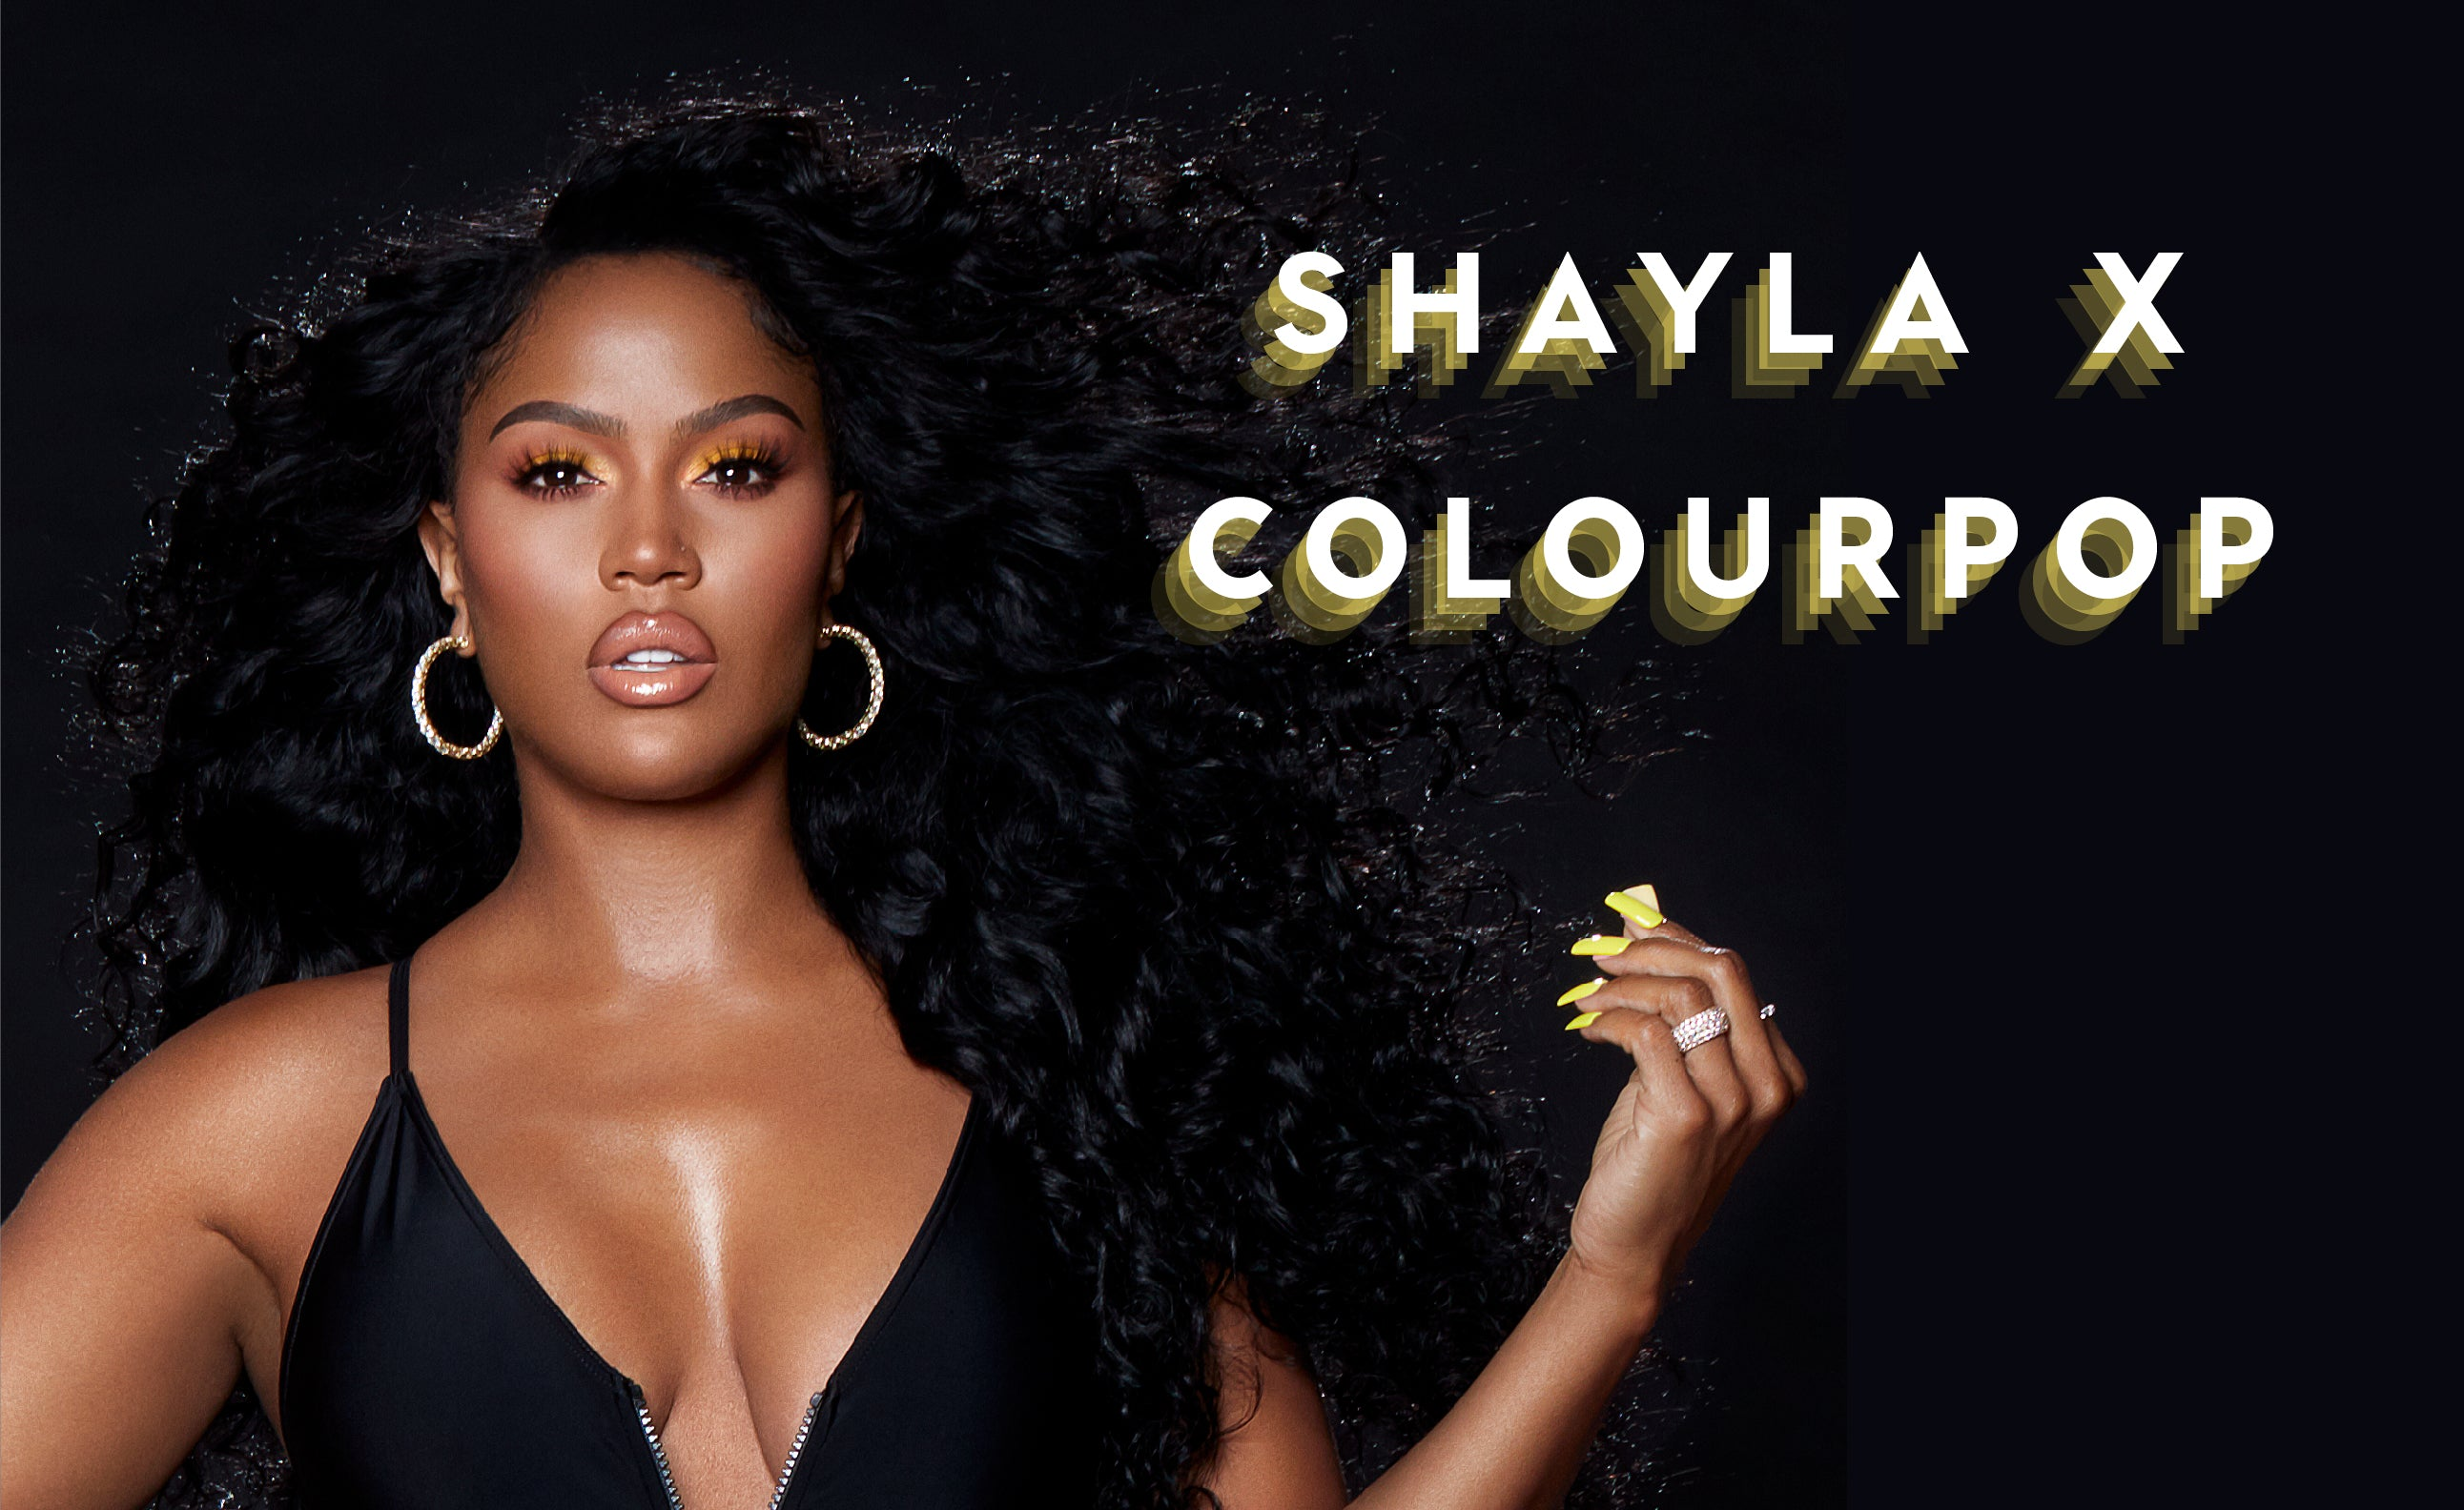 Shayla x Colourpop Makeup Collection